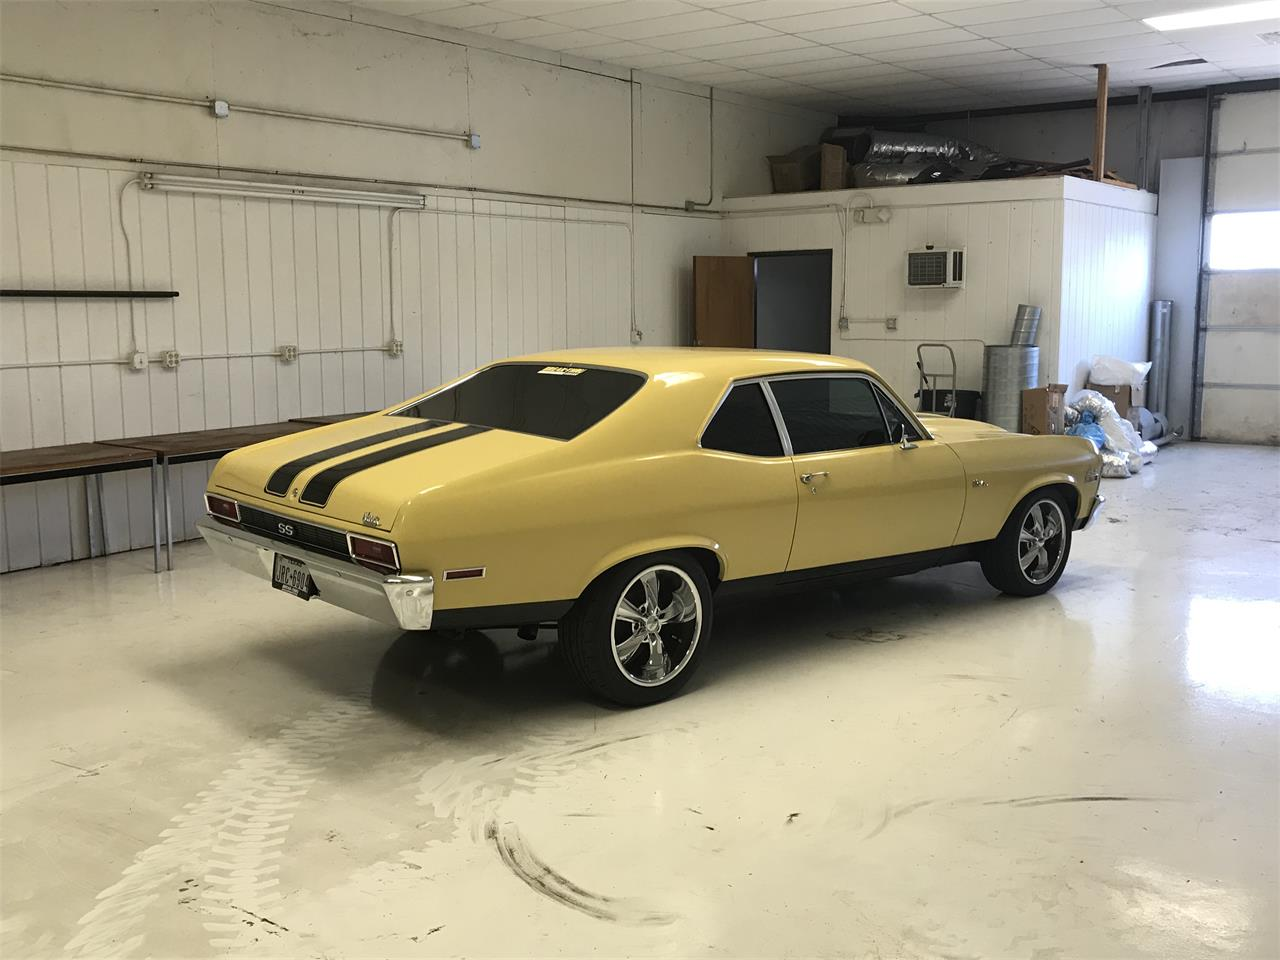 Large Picture of 1970 Nova SS located in Aransas Pass Texas - $28,000.00 Offered by a Private Seller - Q2QN